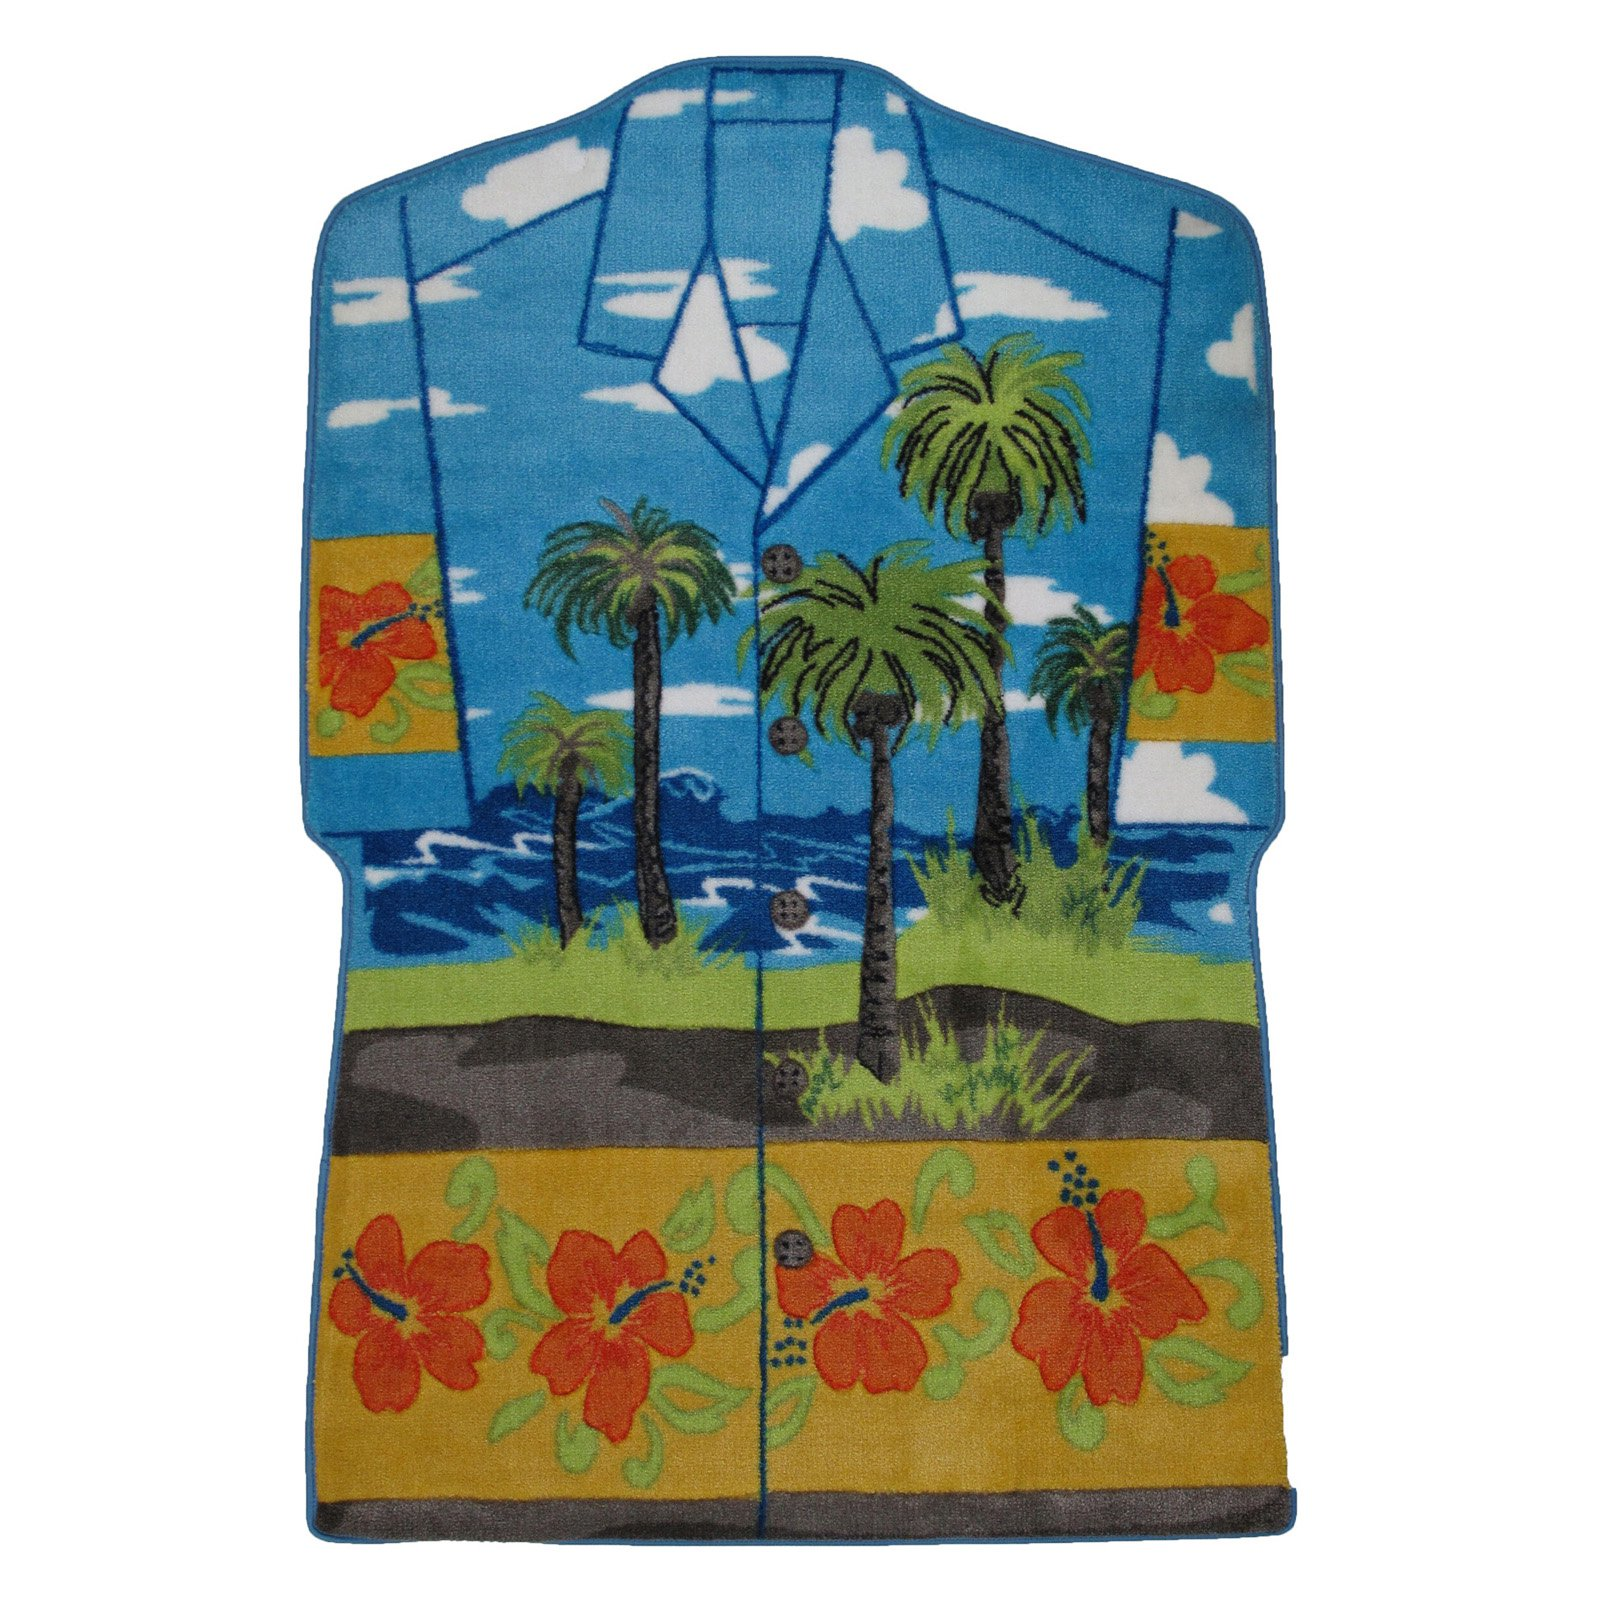 Fun Rugs Hawaiian Shirt Kids Rugs